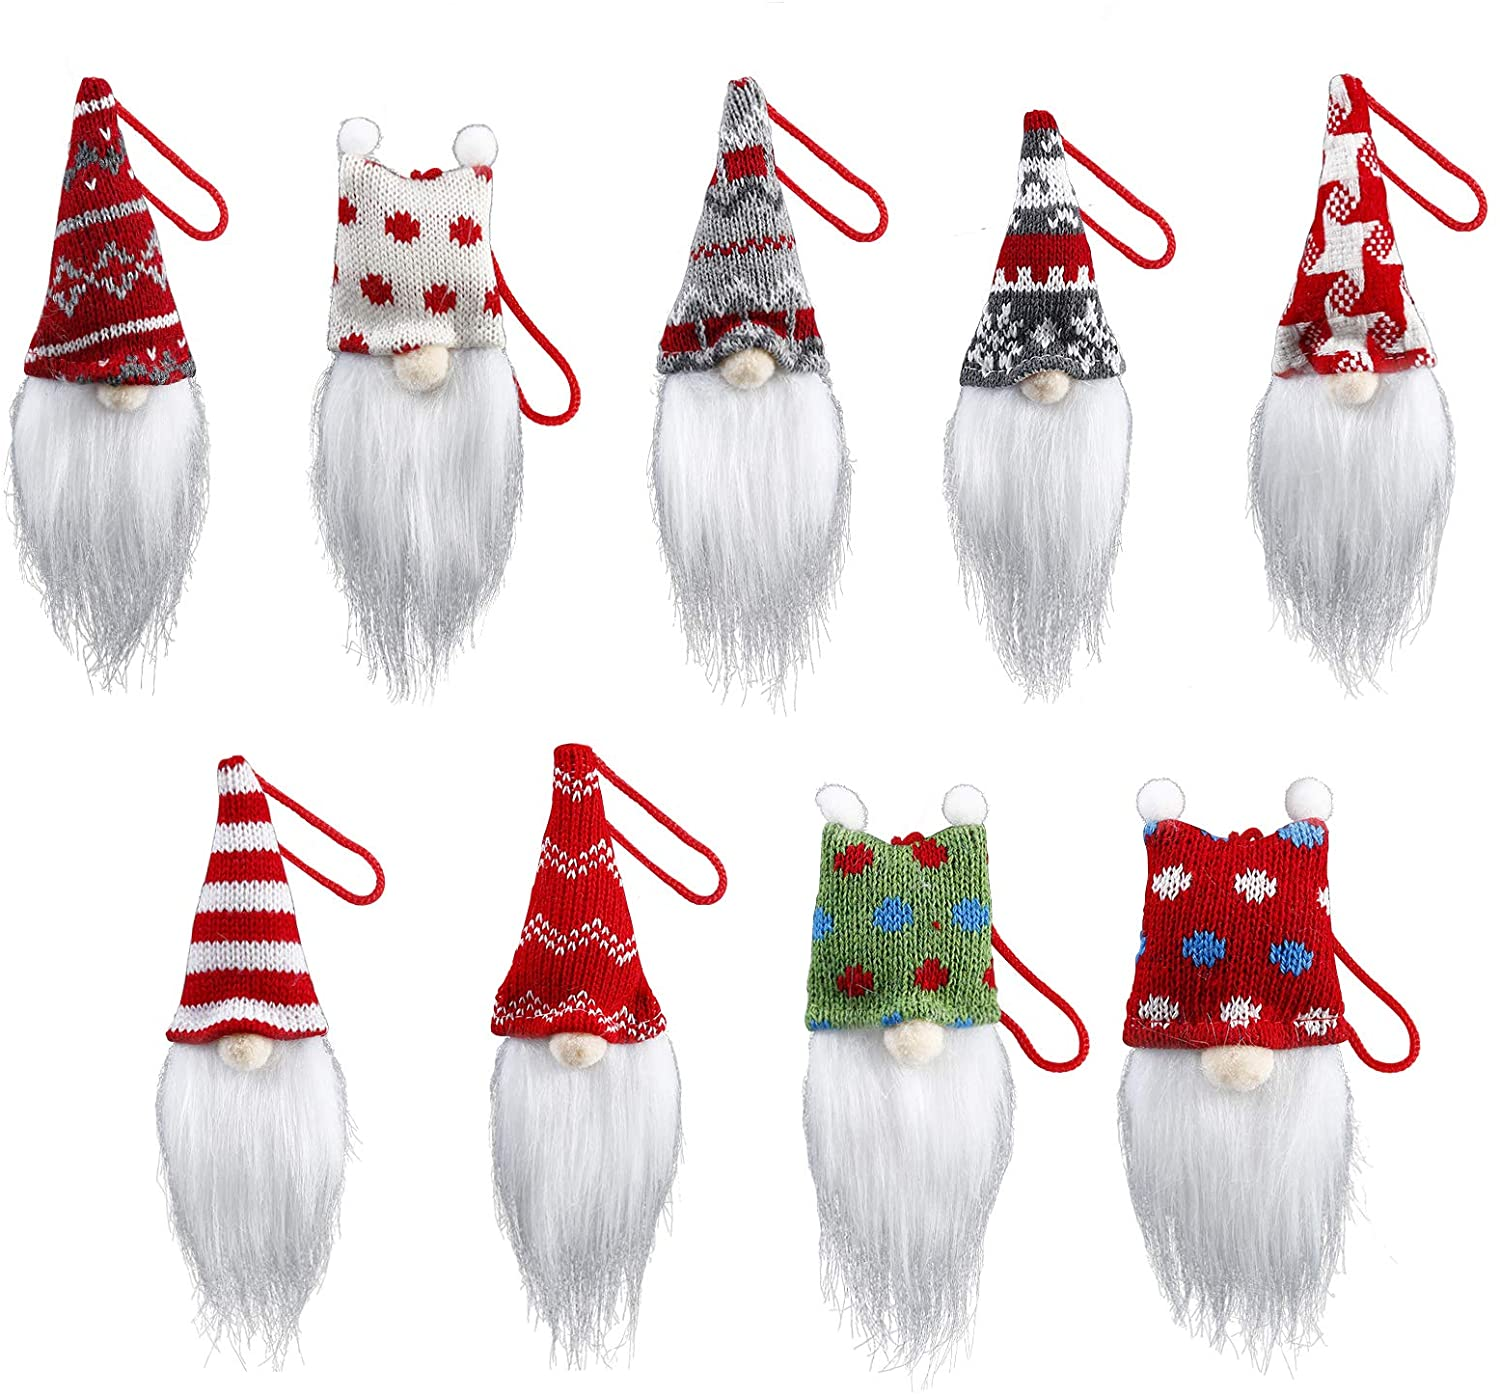 ISWAKI Gnome Christmas Ornaments Set of 9,Christmas Ornaments Xmas Tree Gifts Christmas Decor Hanging Decorations Ornaments